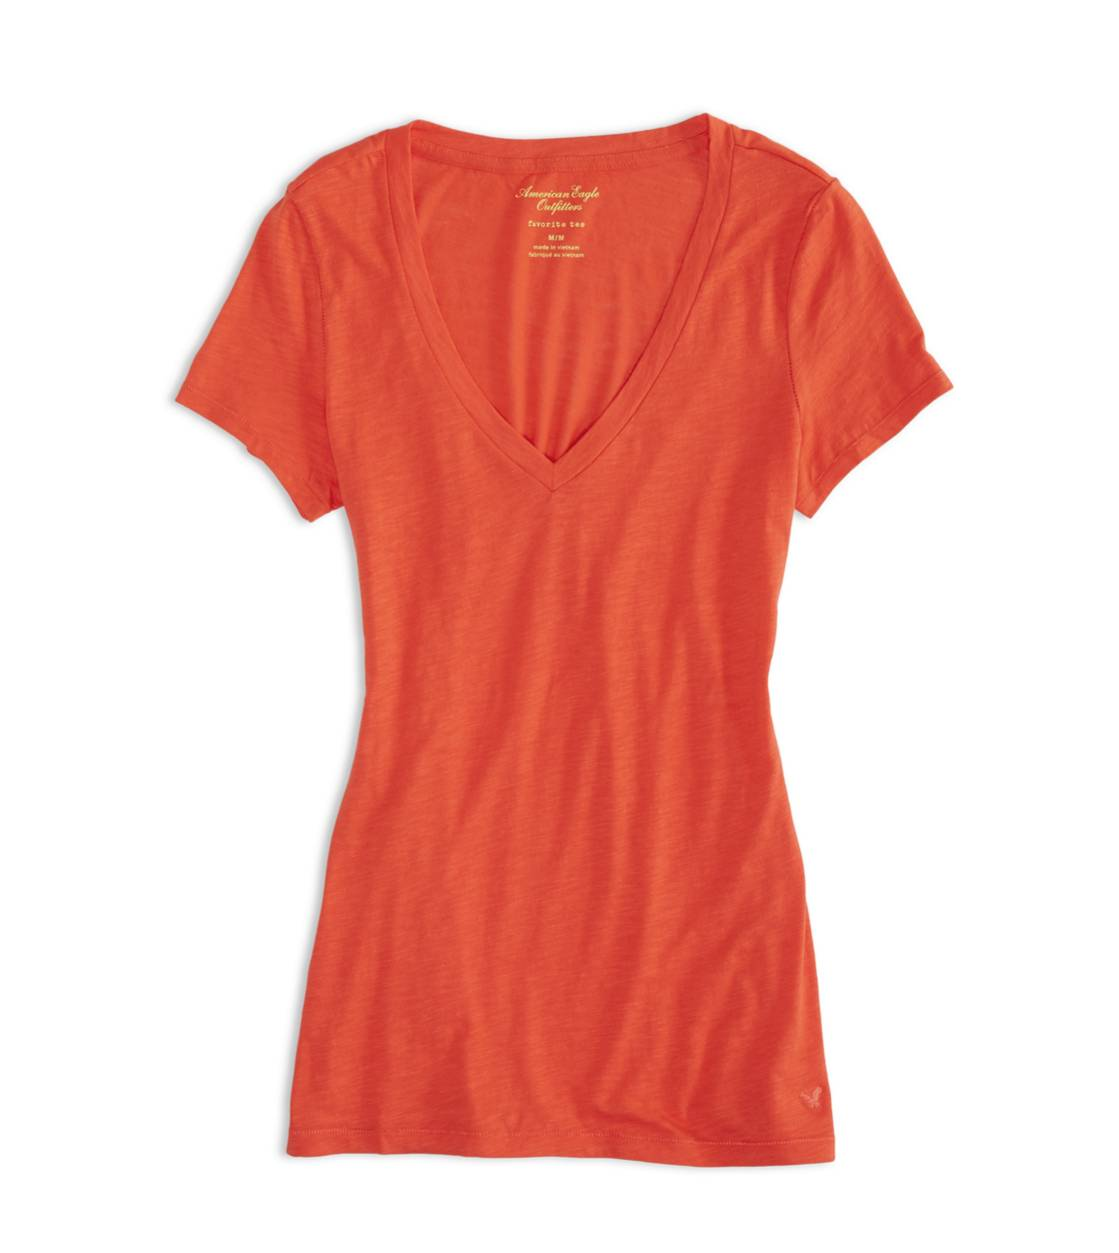 Macaroon AEO Factory V-Neck Favorite T-Shirt